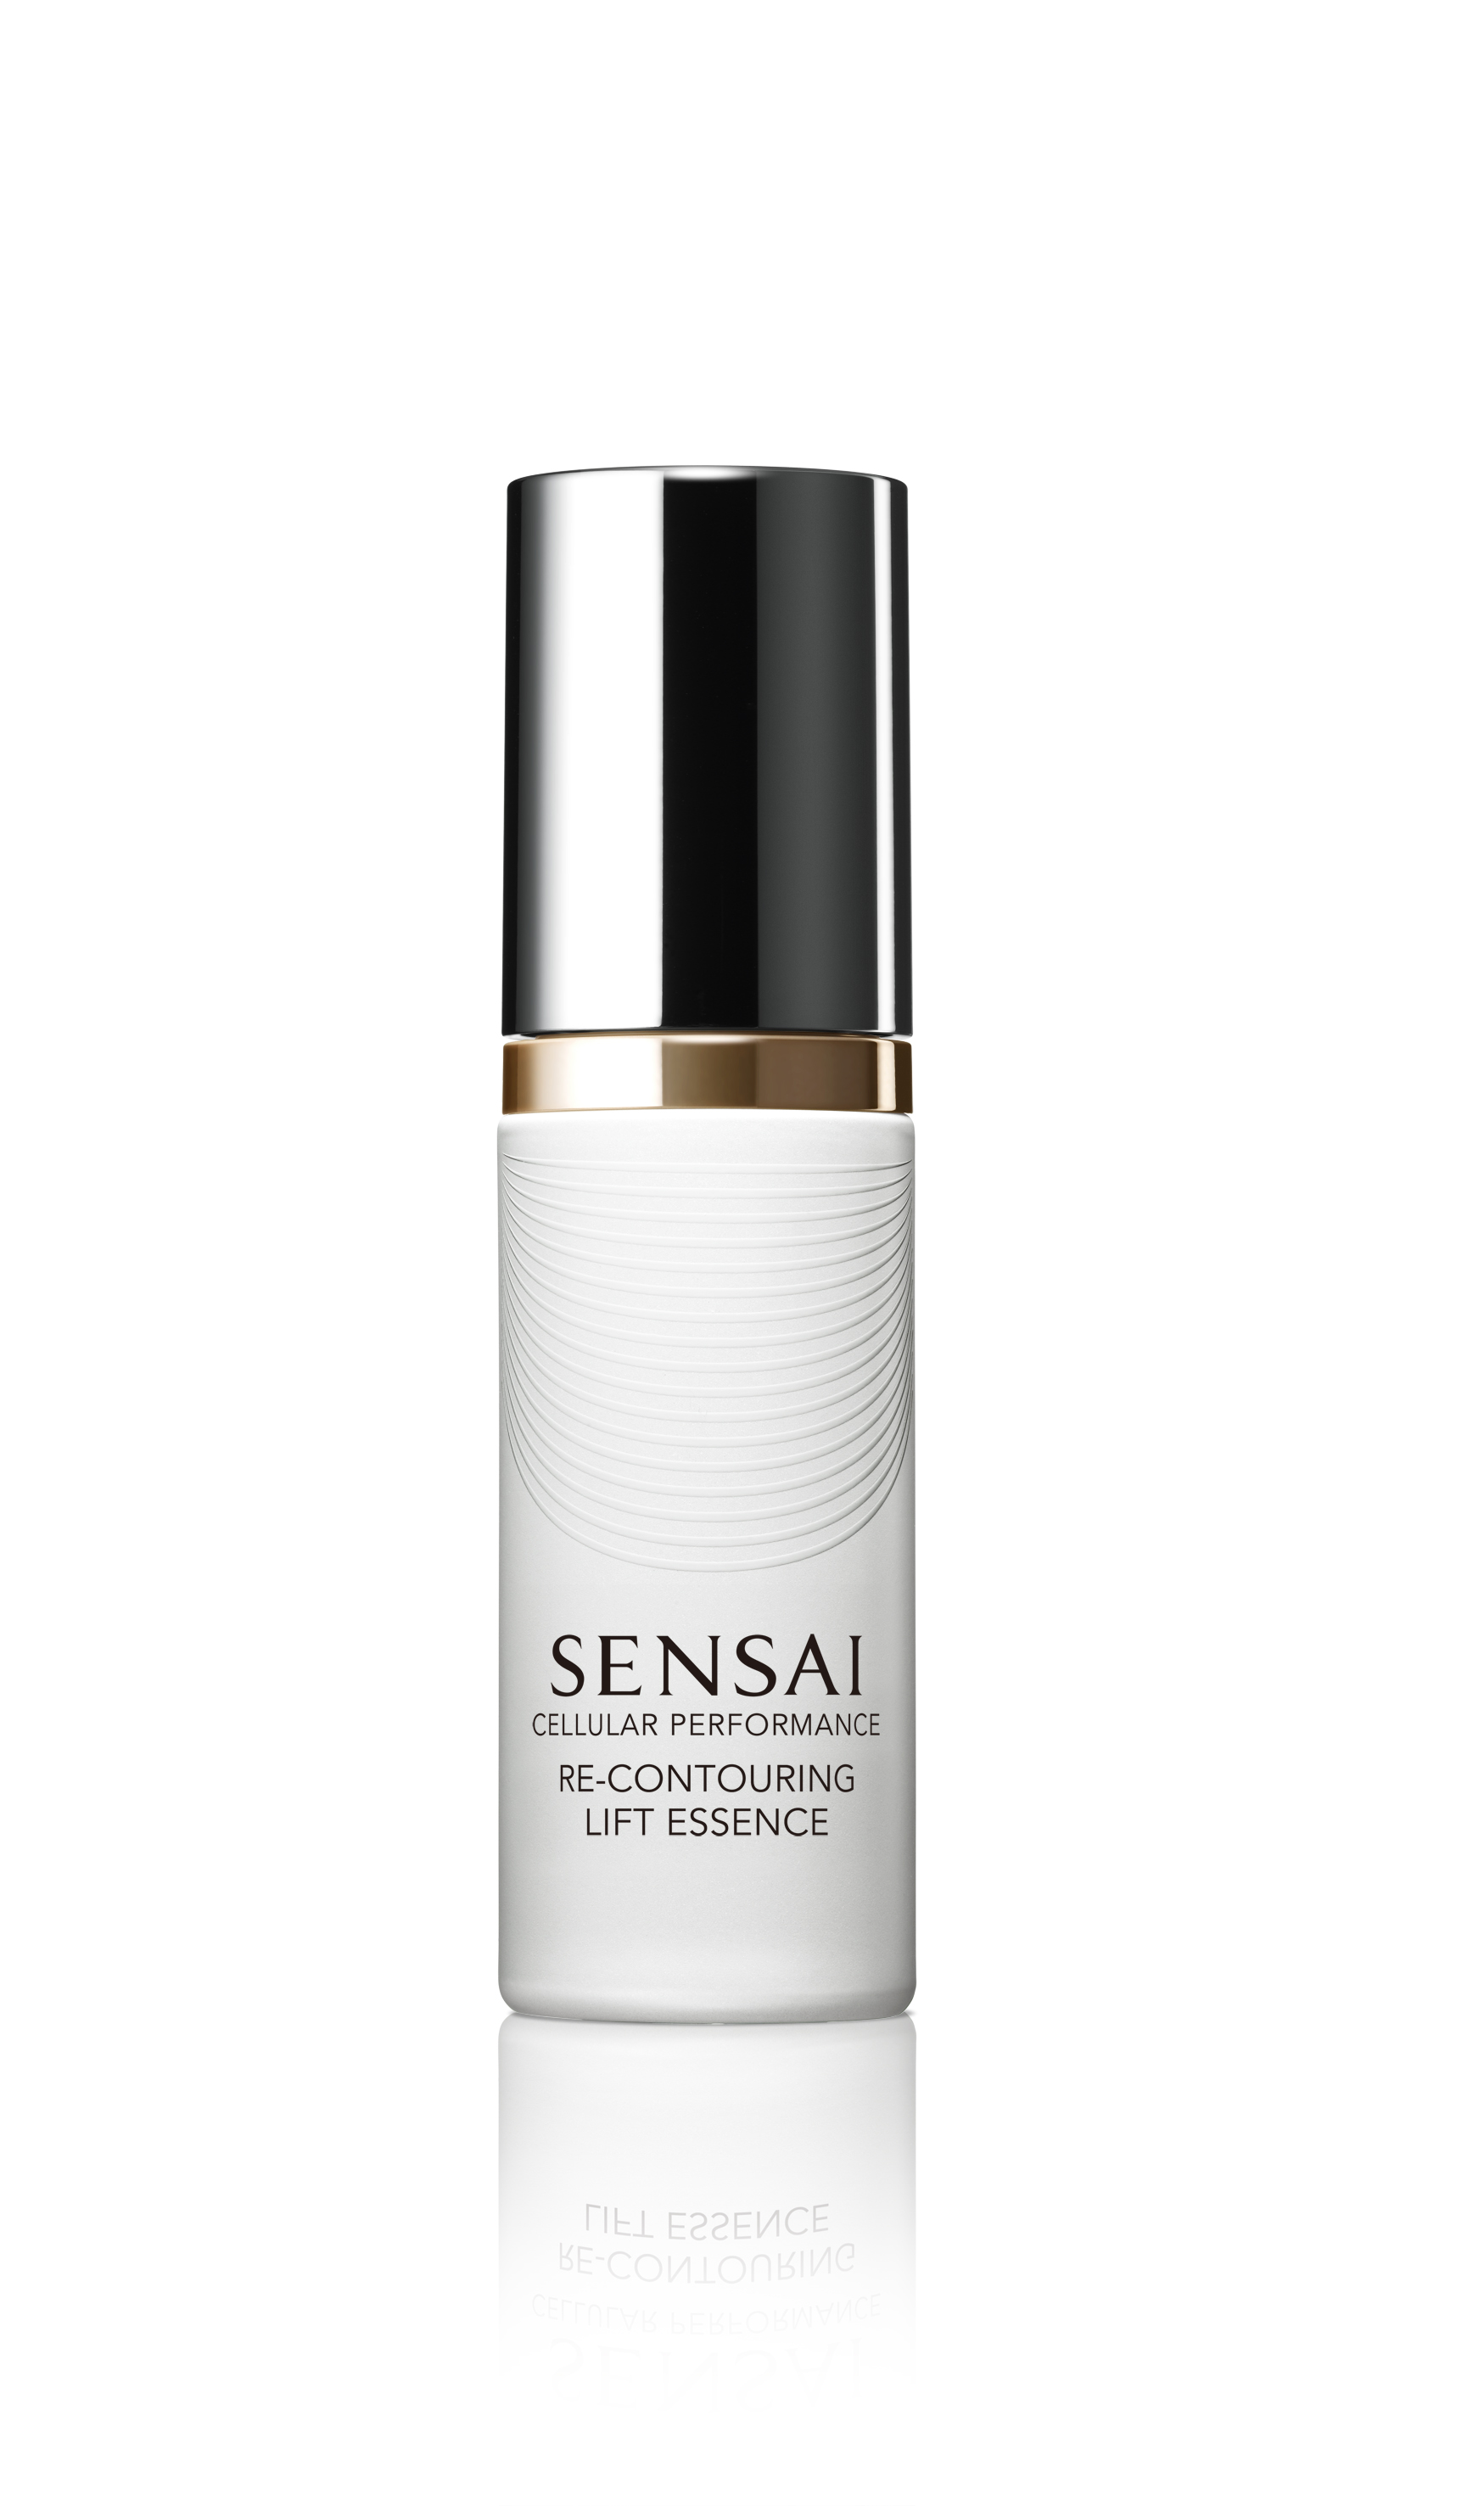 RE-CONTOURING ESSENCE